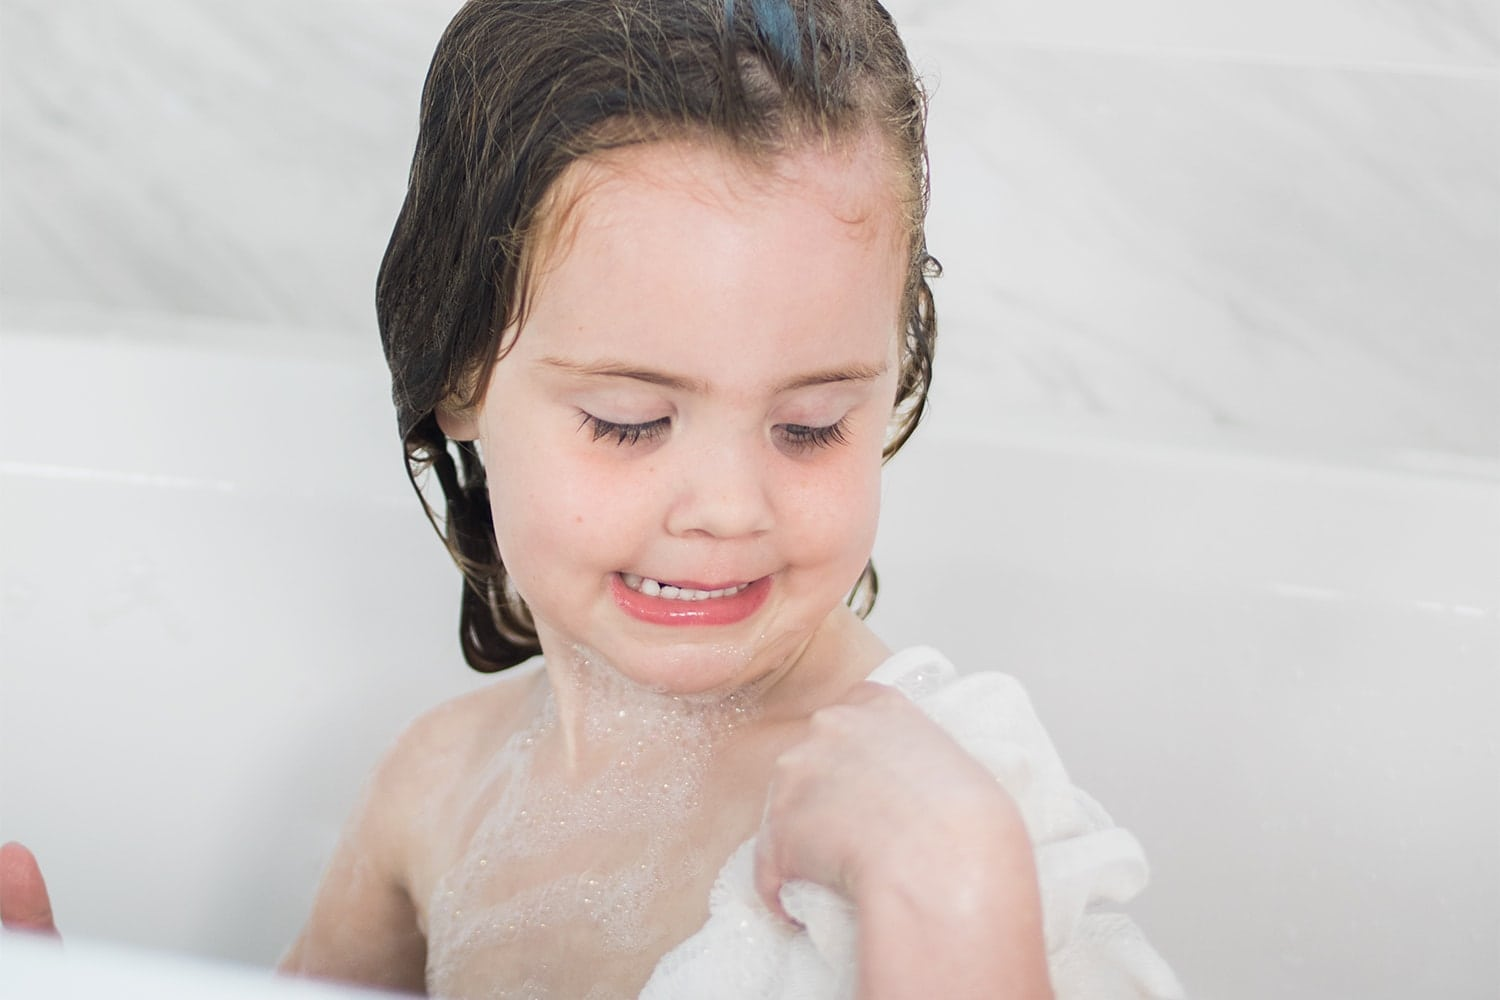 Houston blogger Meg O. on the Go shares her best tips on teaching kids independence at bath time